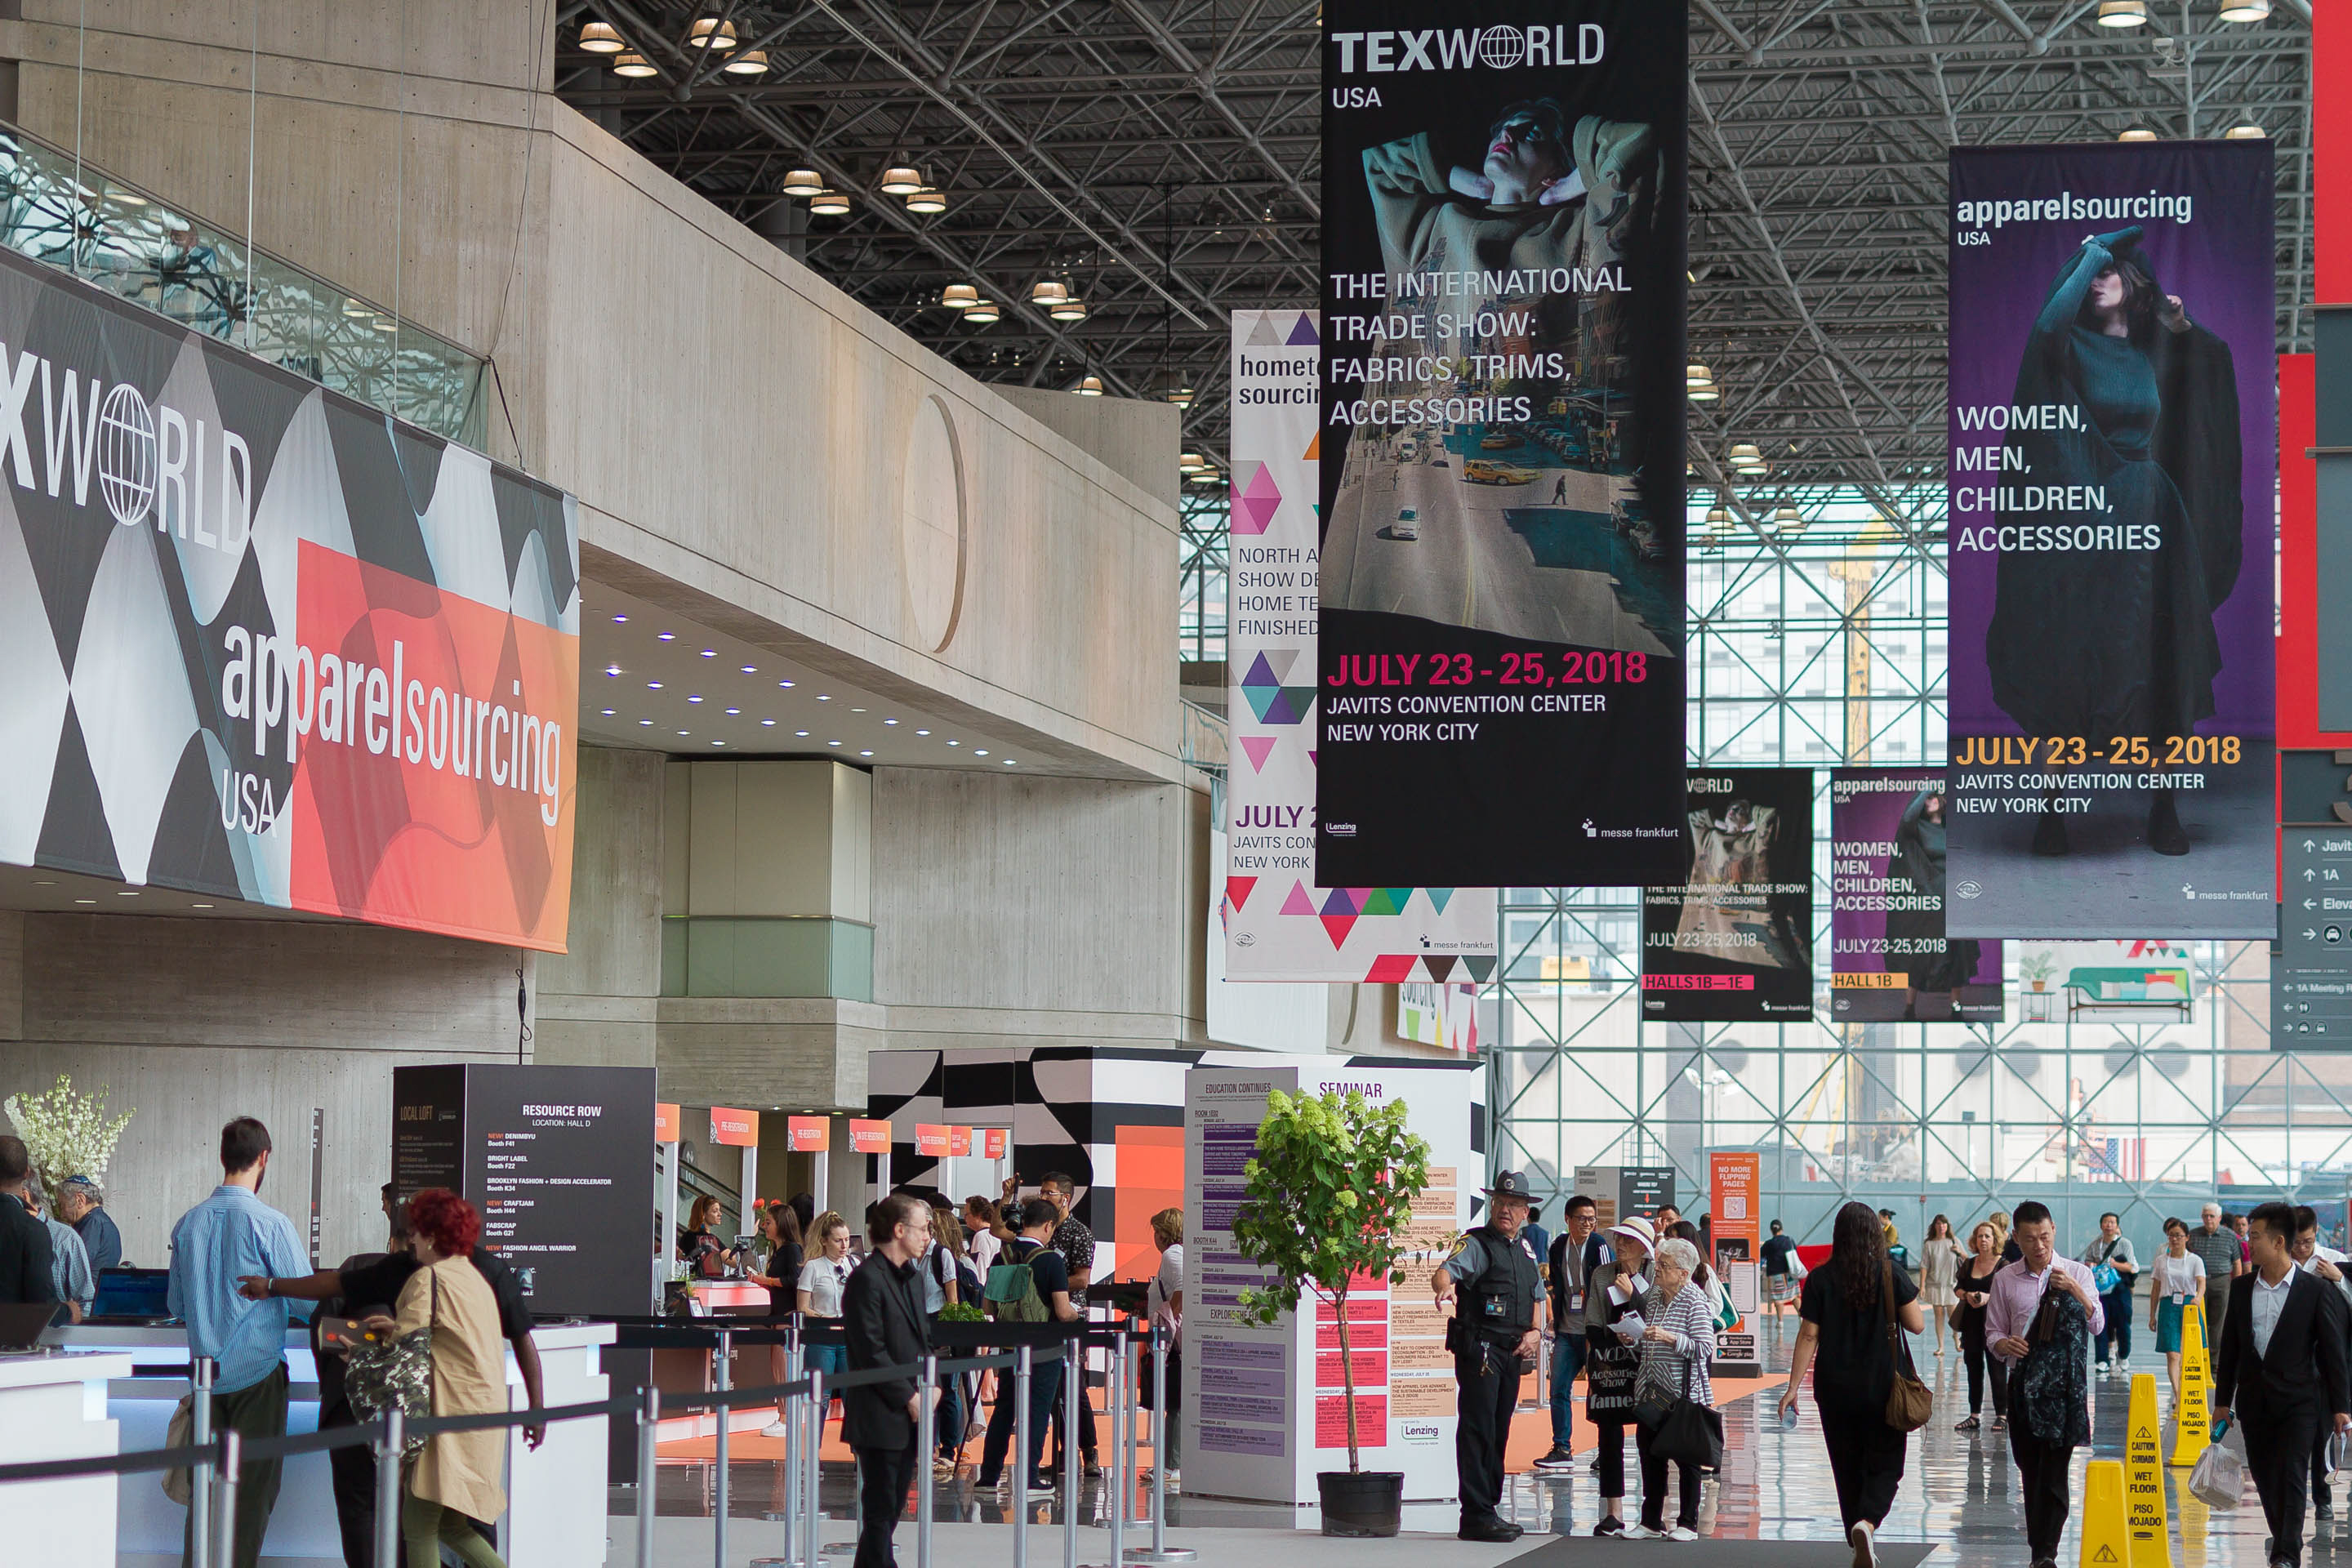 What you can expect at Texworld USA